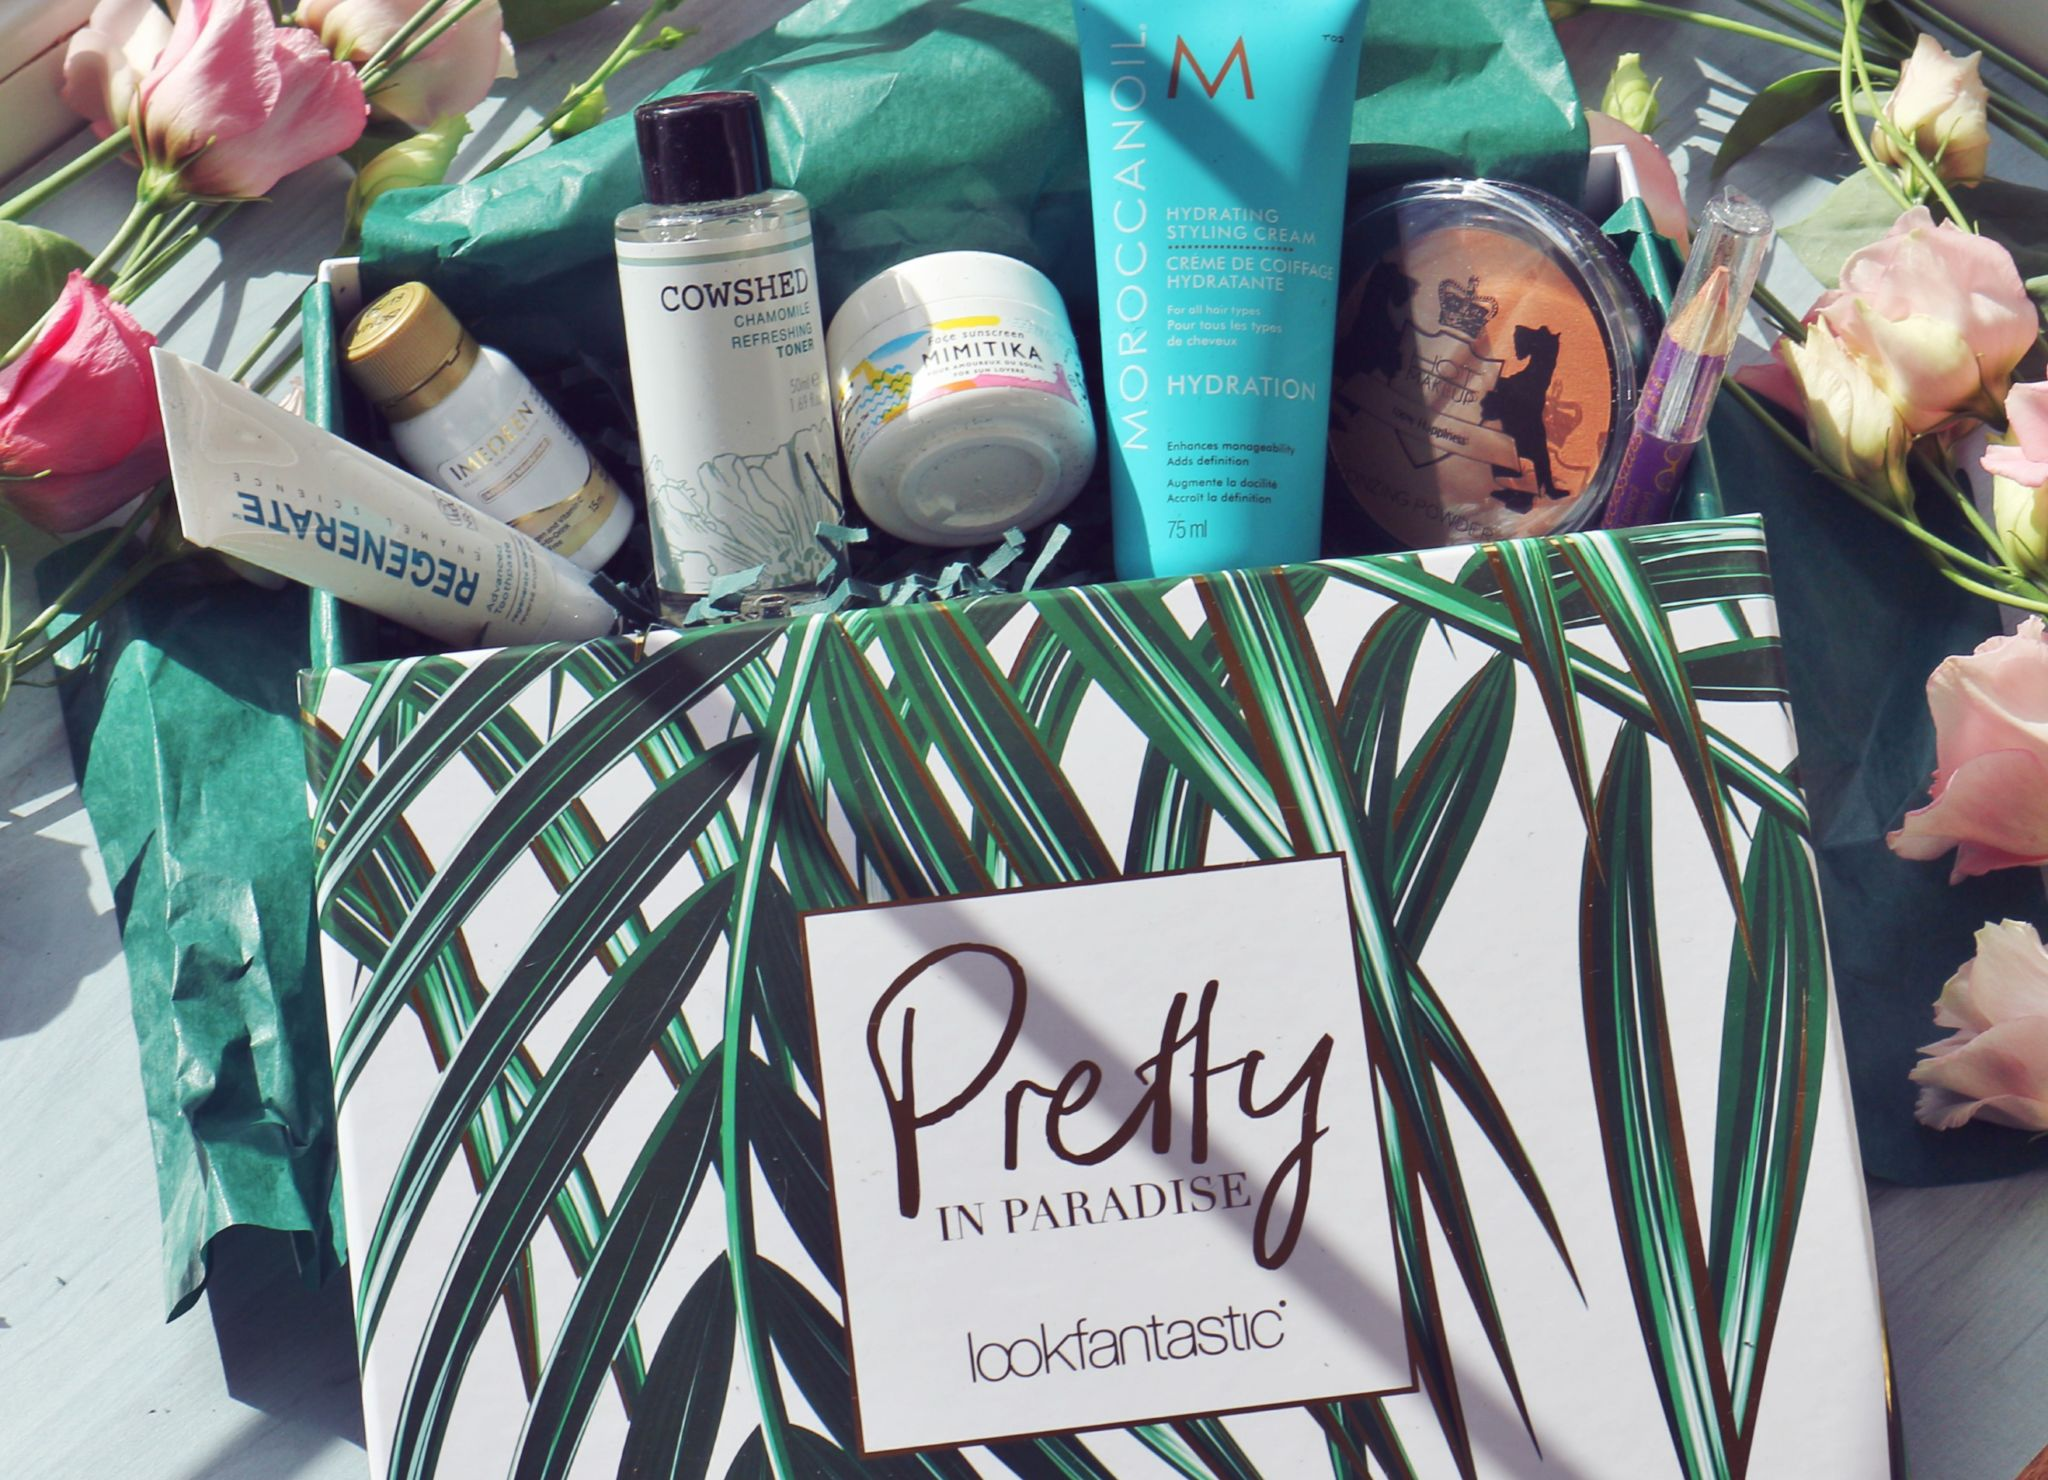 Lookfantastic Beauty Box July 2017 Pretty In Paradise_IMG_2552